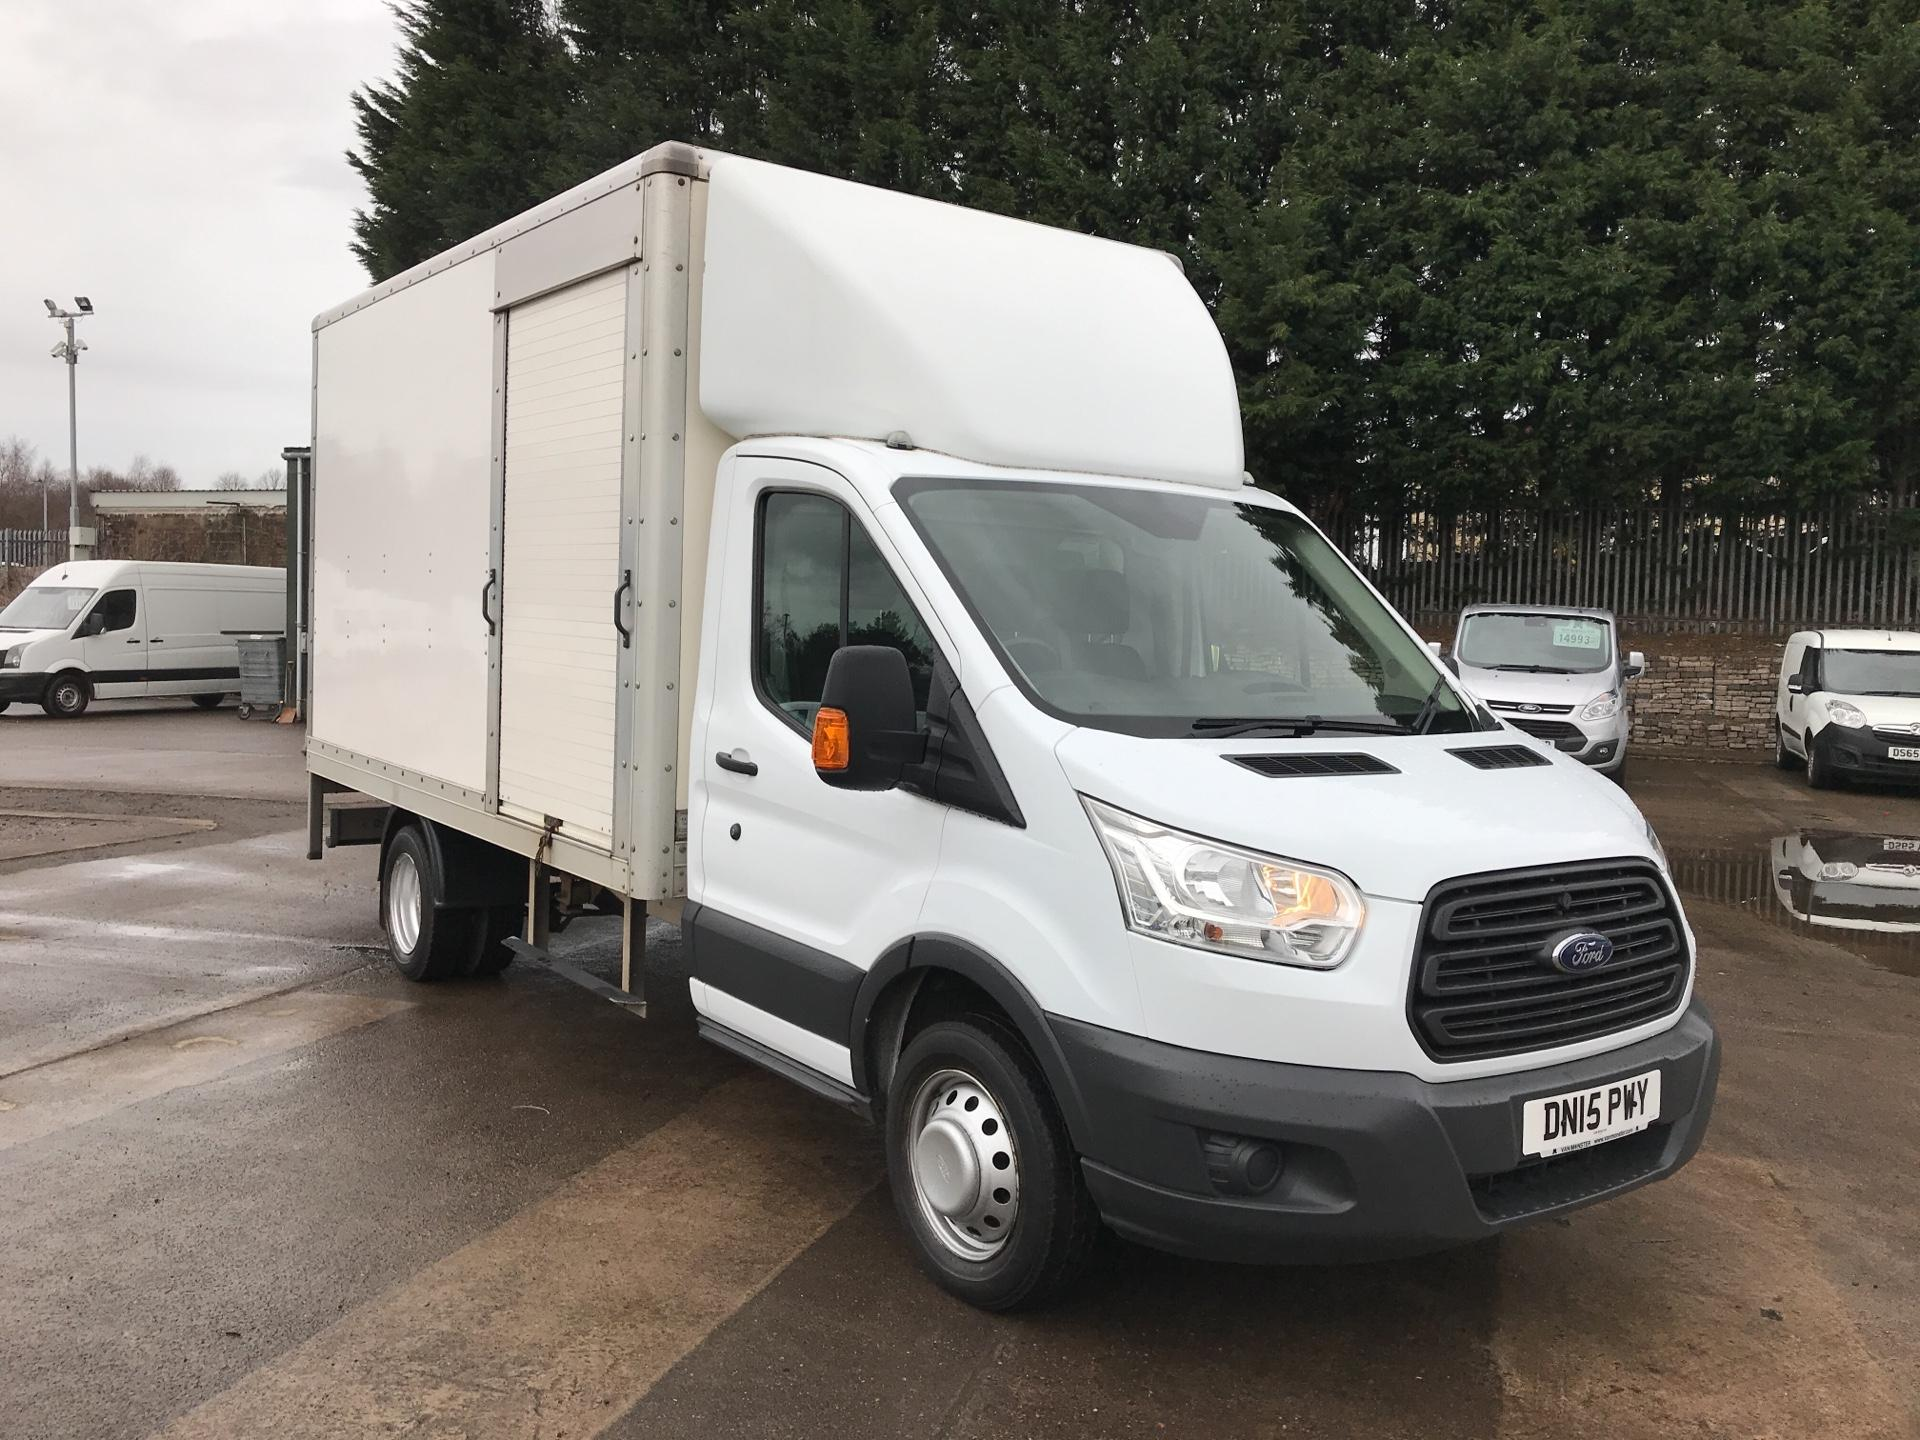 2015 Ford Transit 350 L3 2.2 TDCI 125PS 'ONE STOP' LUTON VAN TWIN SIDE DOORS  (DN15PWY)